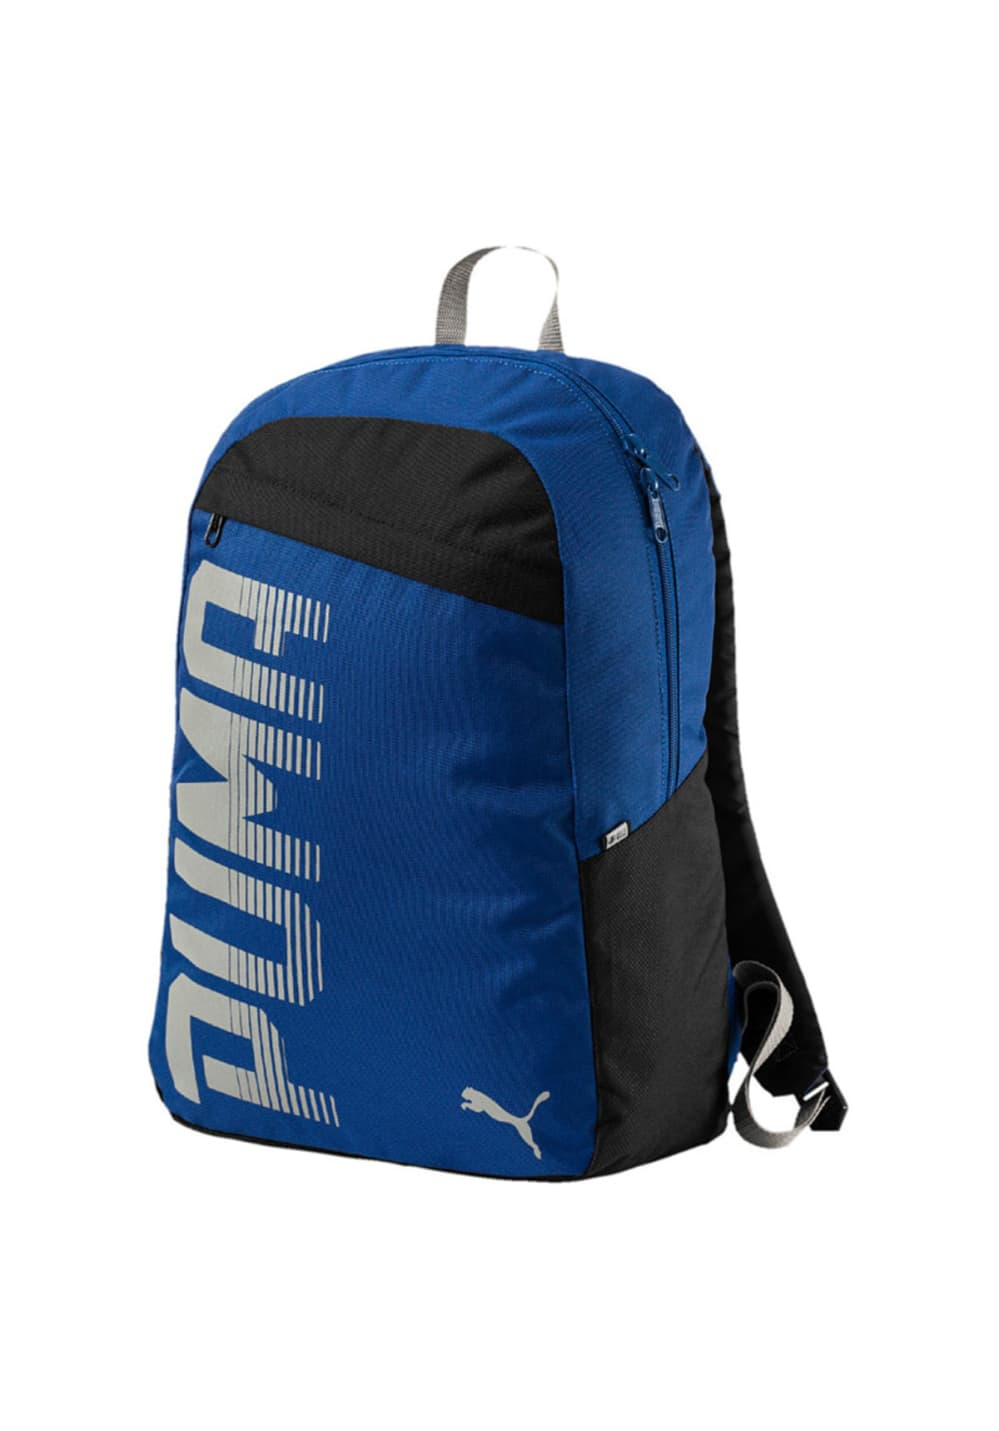 da1bbbff8b3 Next. -40%. This product is currently out of stock. Puma. Pioneer Backpack  I - Backpacks